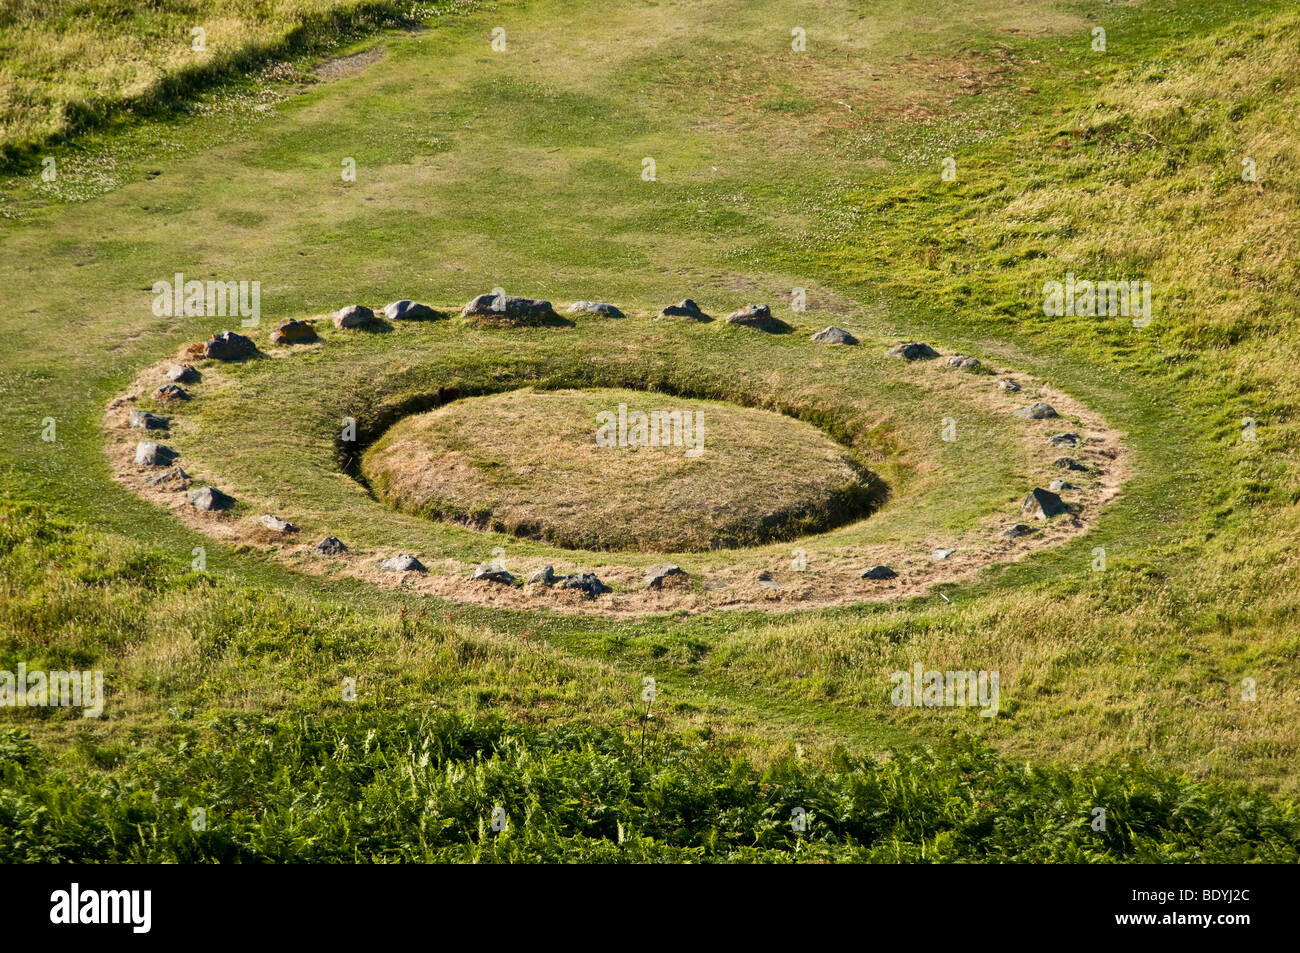 dh Pezeries Point TORTEVAL GUERNSEY Table des Pions historical site fairies channel island historic fairy ring - Stock Image